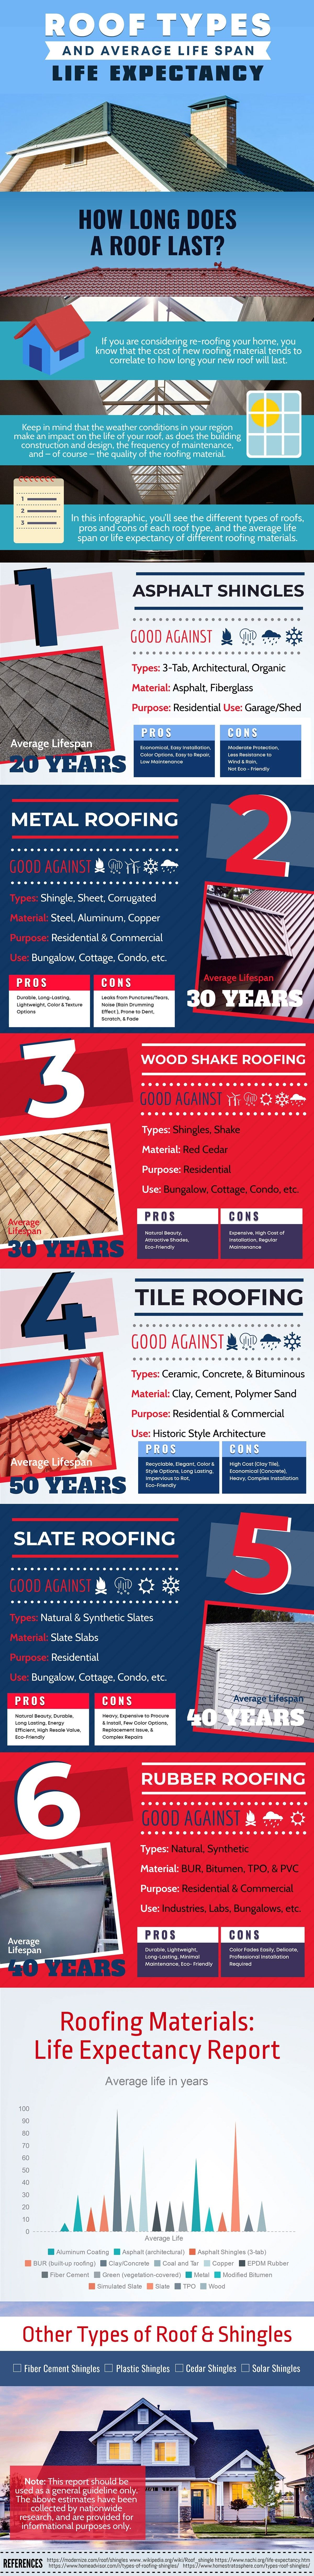 Roof Types Average Life Span Infographic Roof Types Roofing Roof Shingles